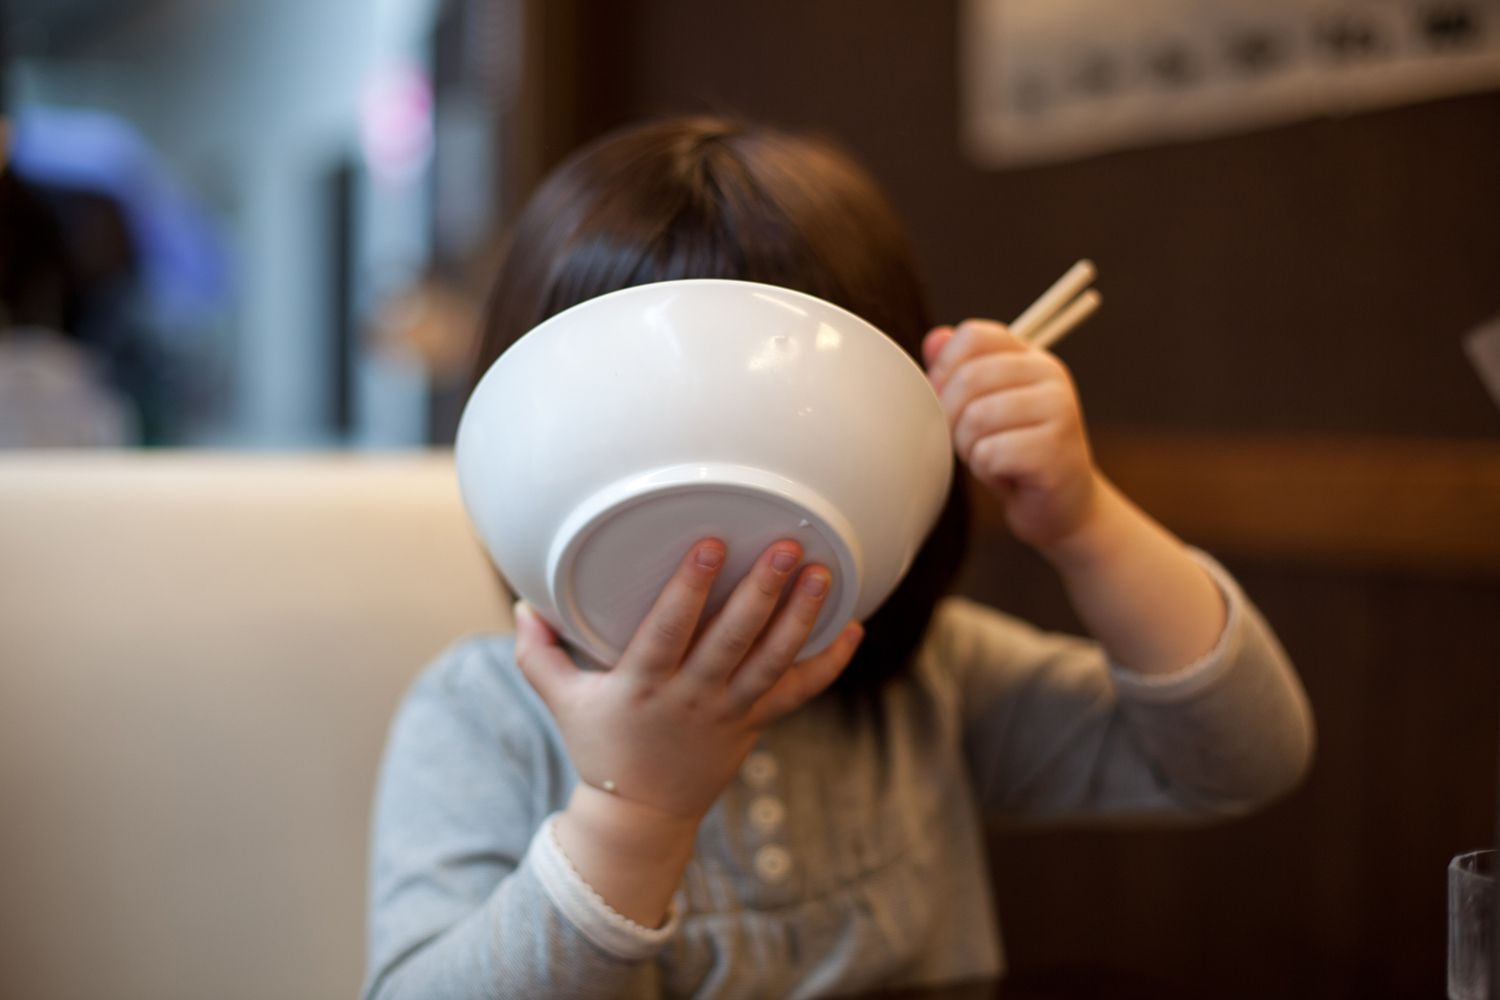 girl eating with bowl to face